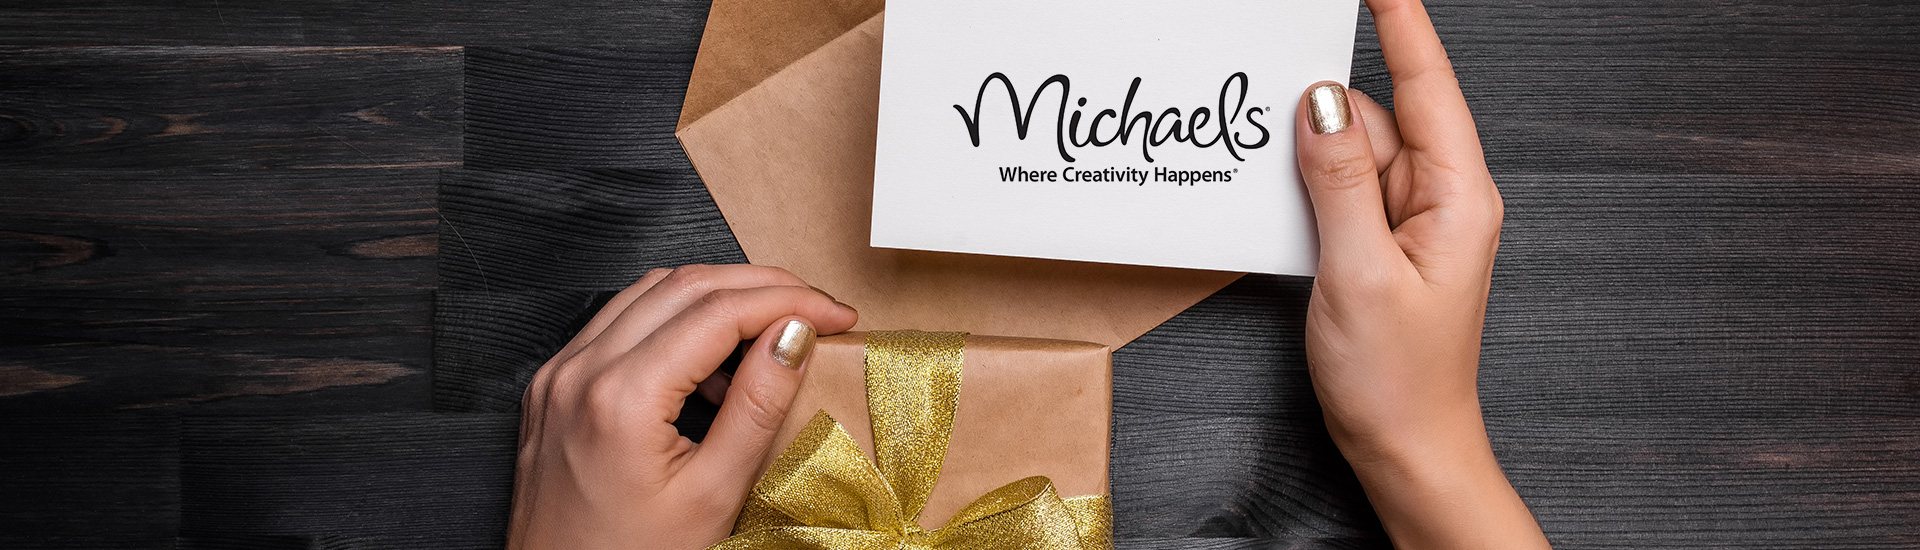 $29 for a $50 eGift Card for Michaels!